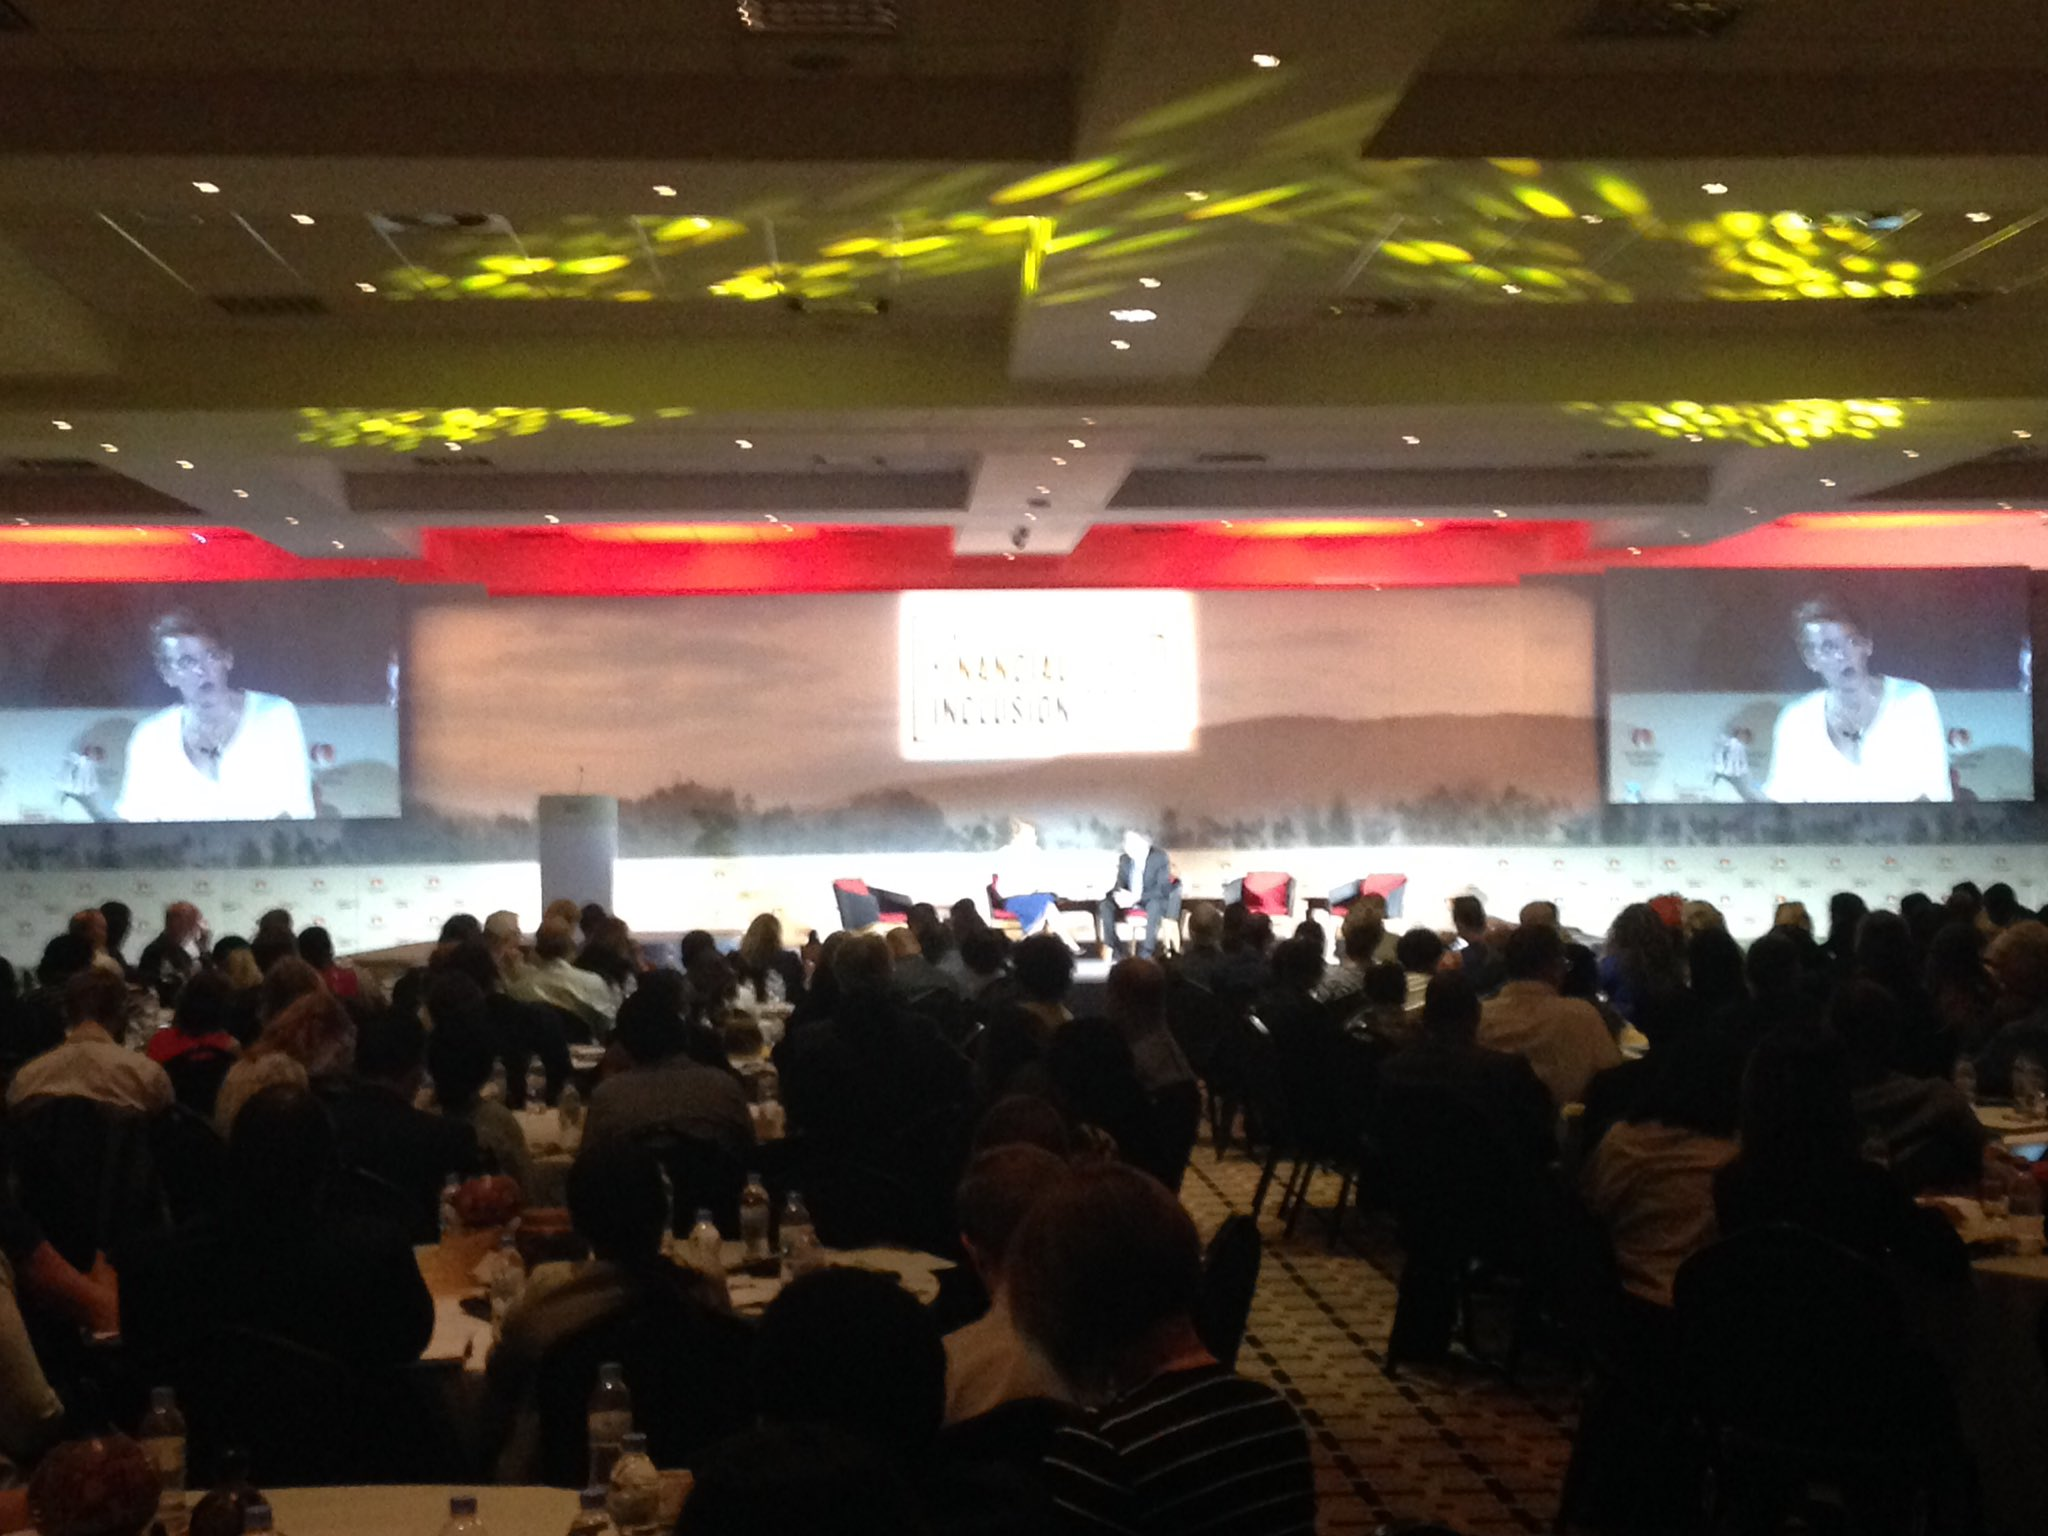 Eldar Shafir: #Bigdata is going to help us get a more nuanced and segmented understanding of how consumers behaviour #SoFI2016 https://t.co/9fmCS05D9b